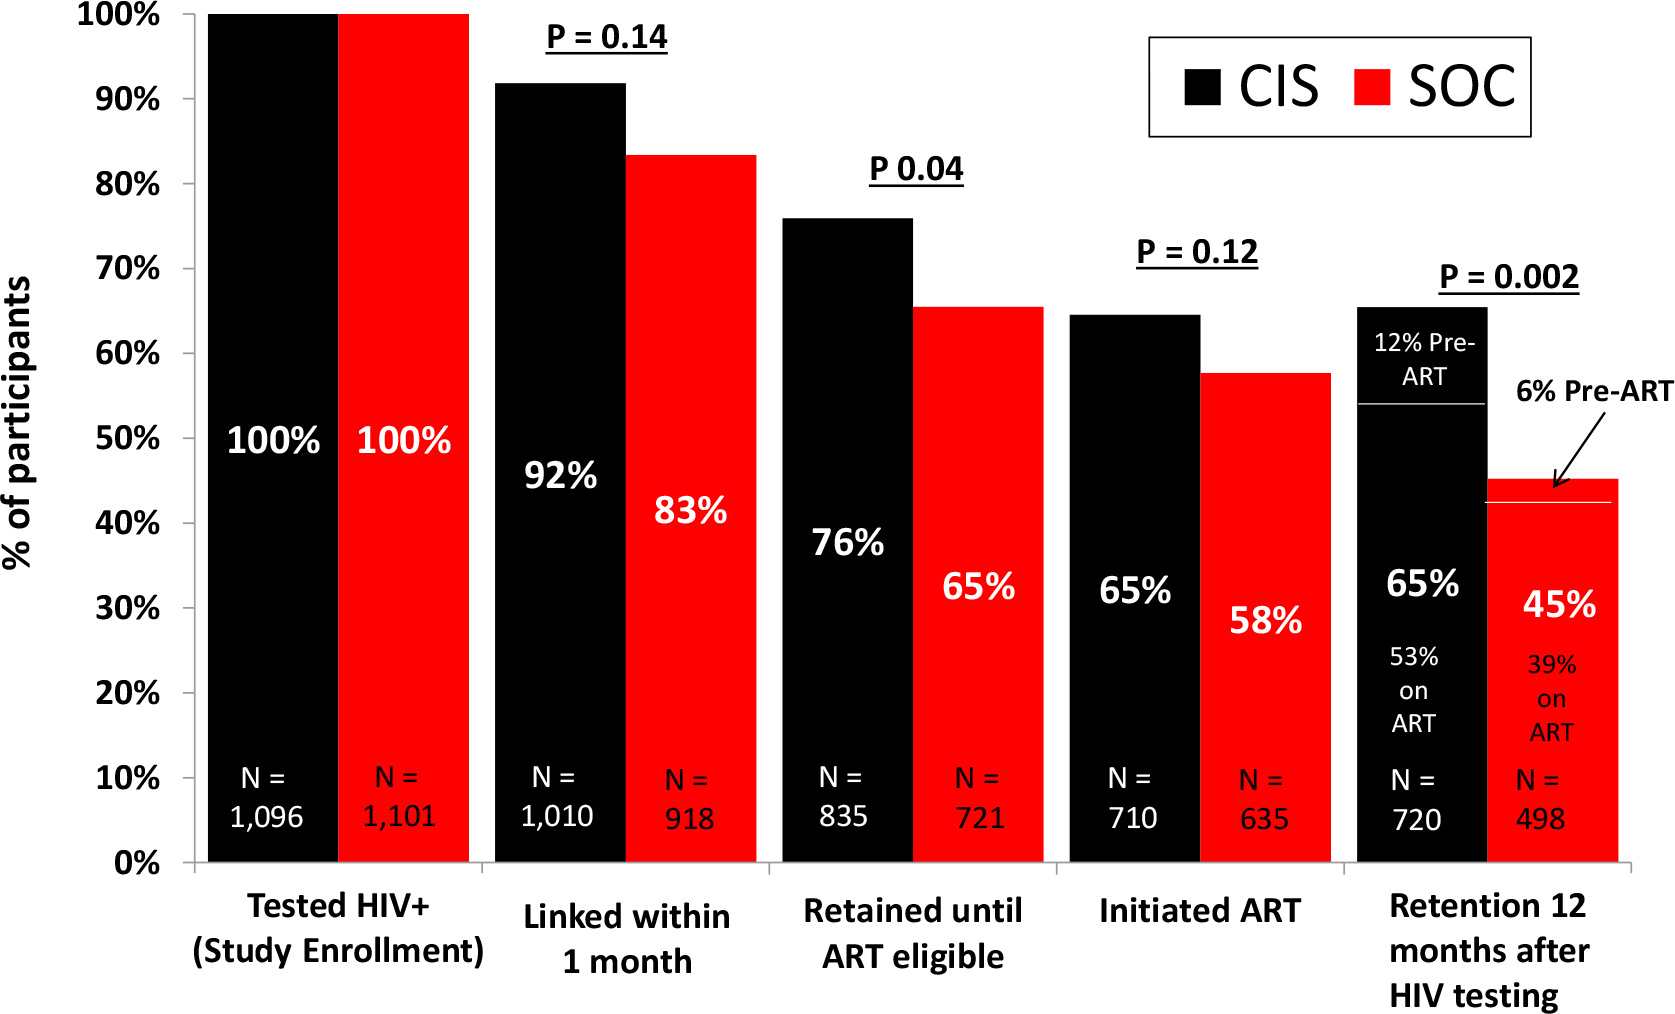 HIV care continuum comparing the combination intervention strategy (CIS) study arm versus the standard of care (SOC) study arm.